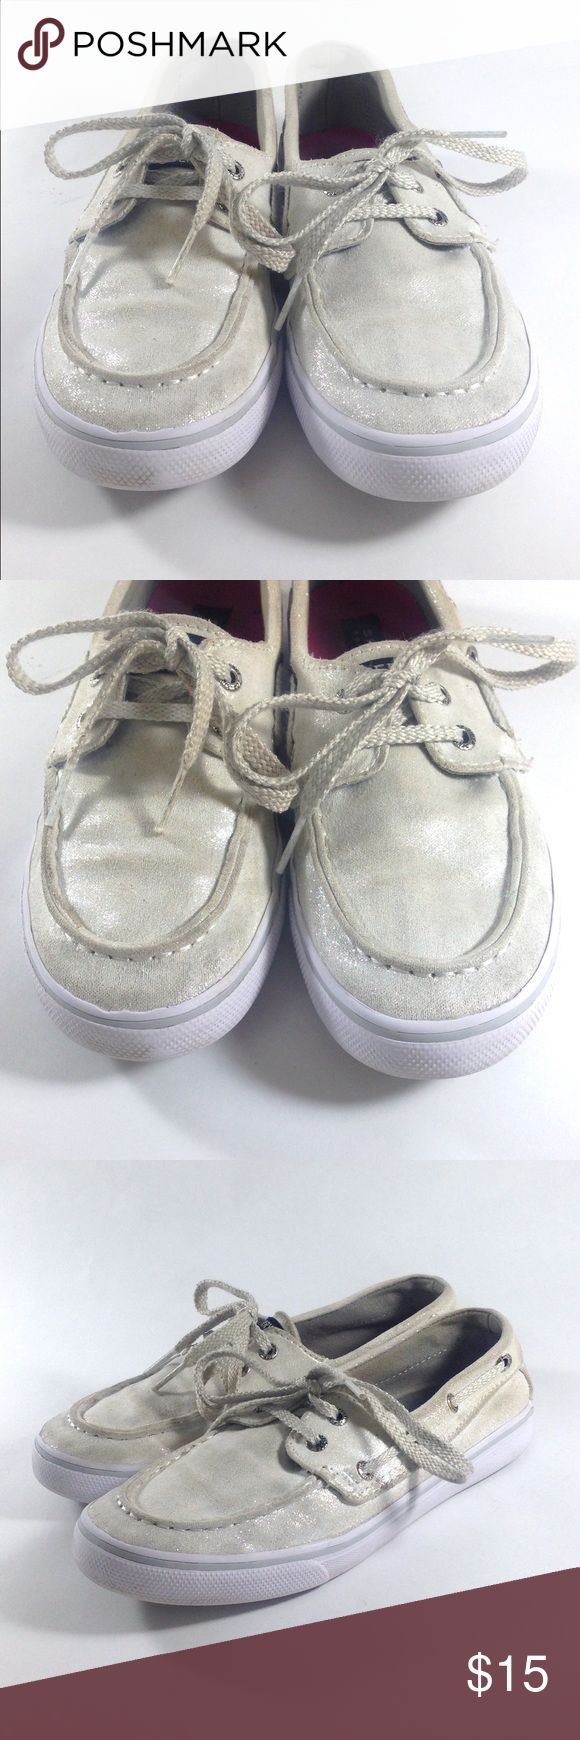 Sperry Top Sider Silver Metallic Boat Shoes 2.5 Y Up for sale is this cute pair of Sperry Silver Bahama Boat Shoes. What little girl doesn't want glittery shoes?! Girls Size 2.5 Eur 34.5